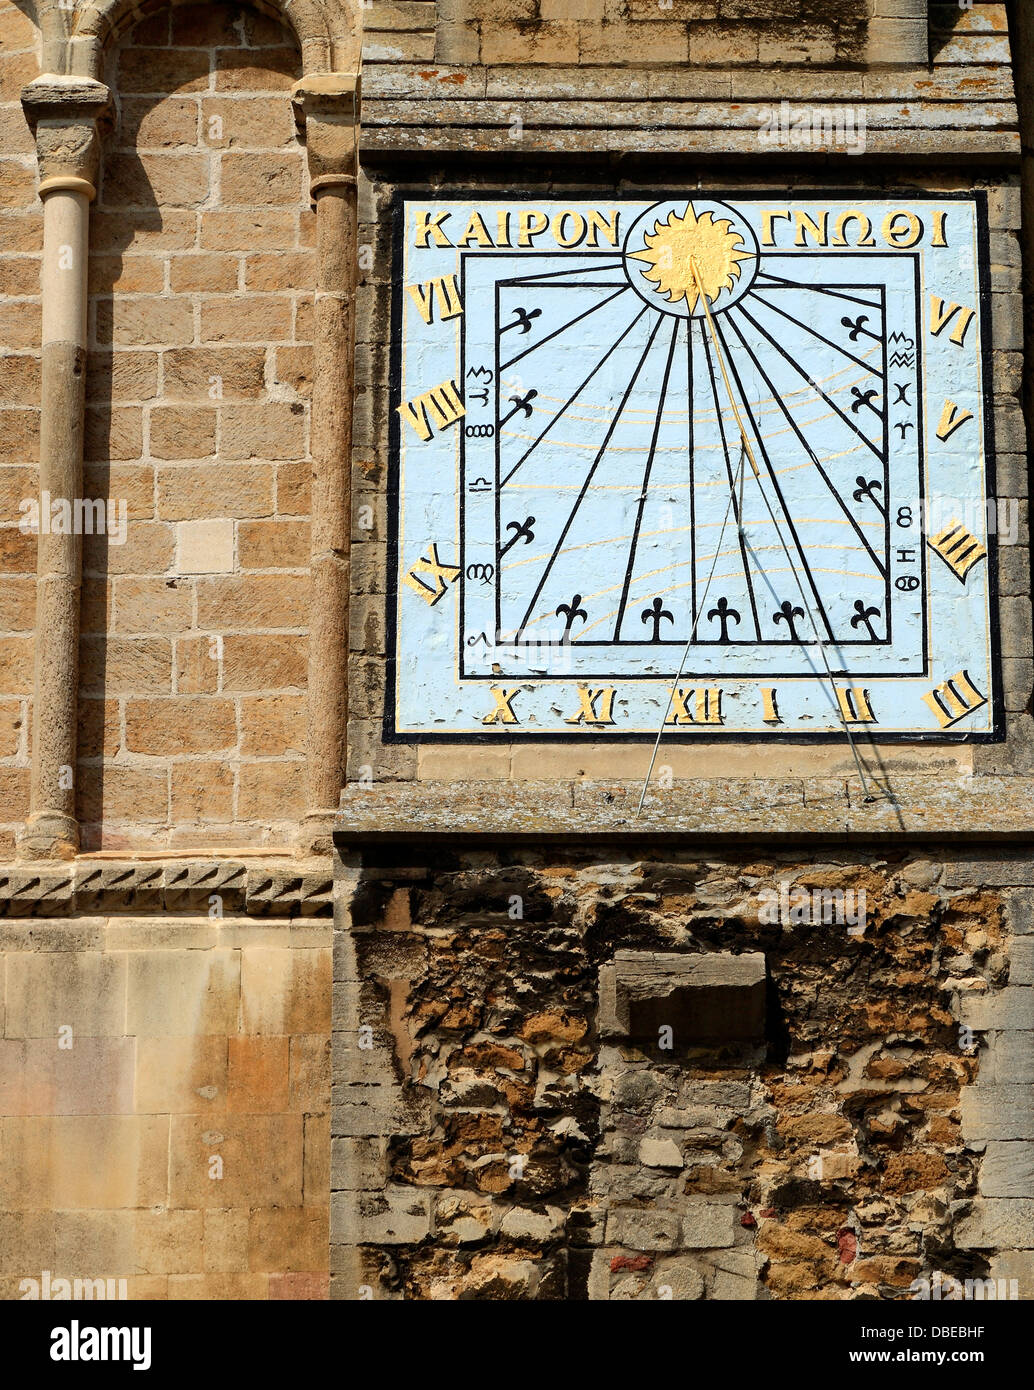 Ely Cathedral, Sundial on South Transept wall, Greek inscription 'Know the Time', Cambridgeshire England - Stock Image